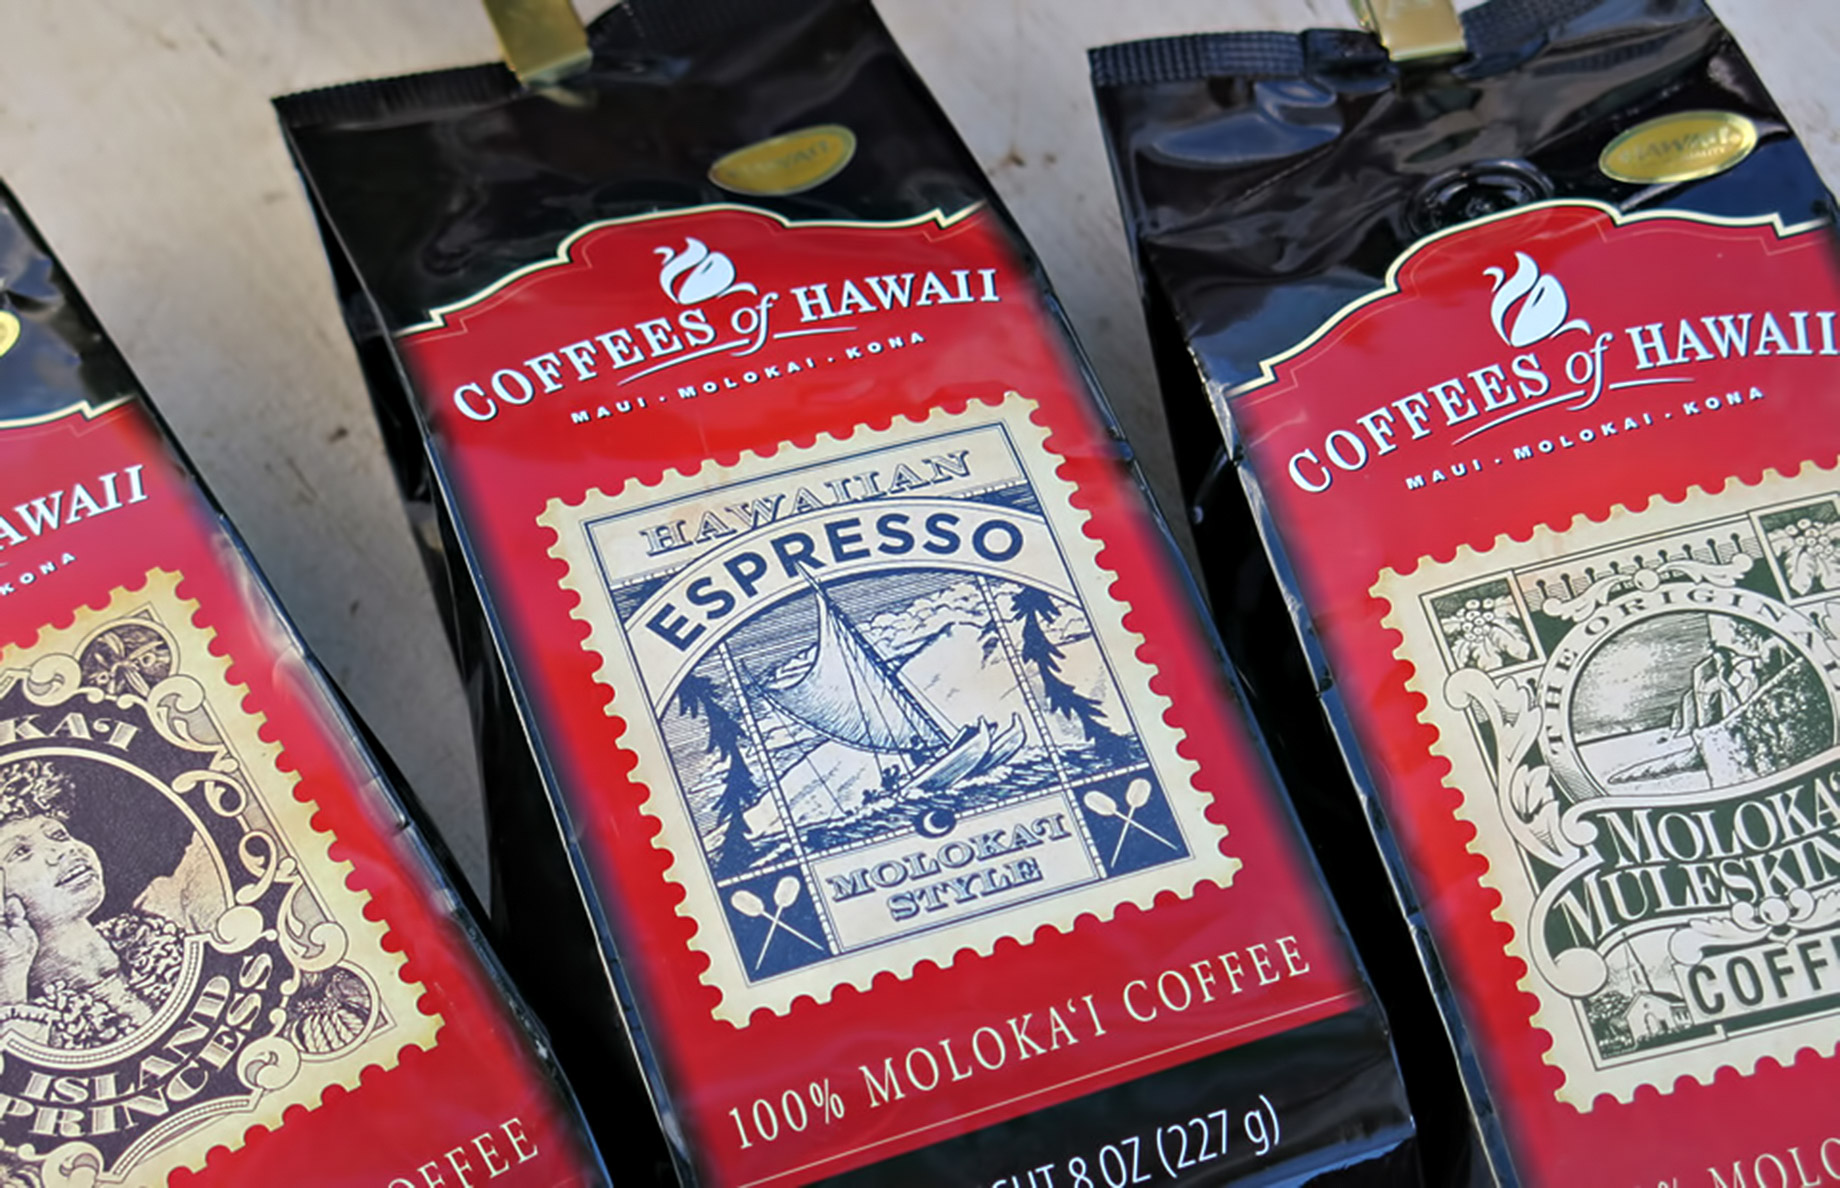 Molokai Coffee - Hawaii - One of the Most Expensive Coffees in the World